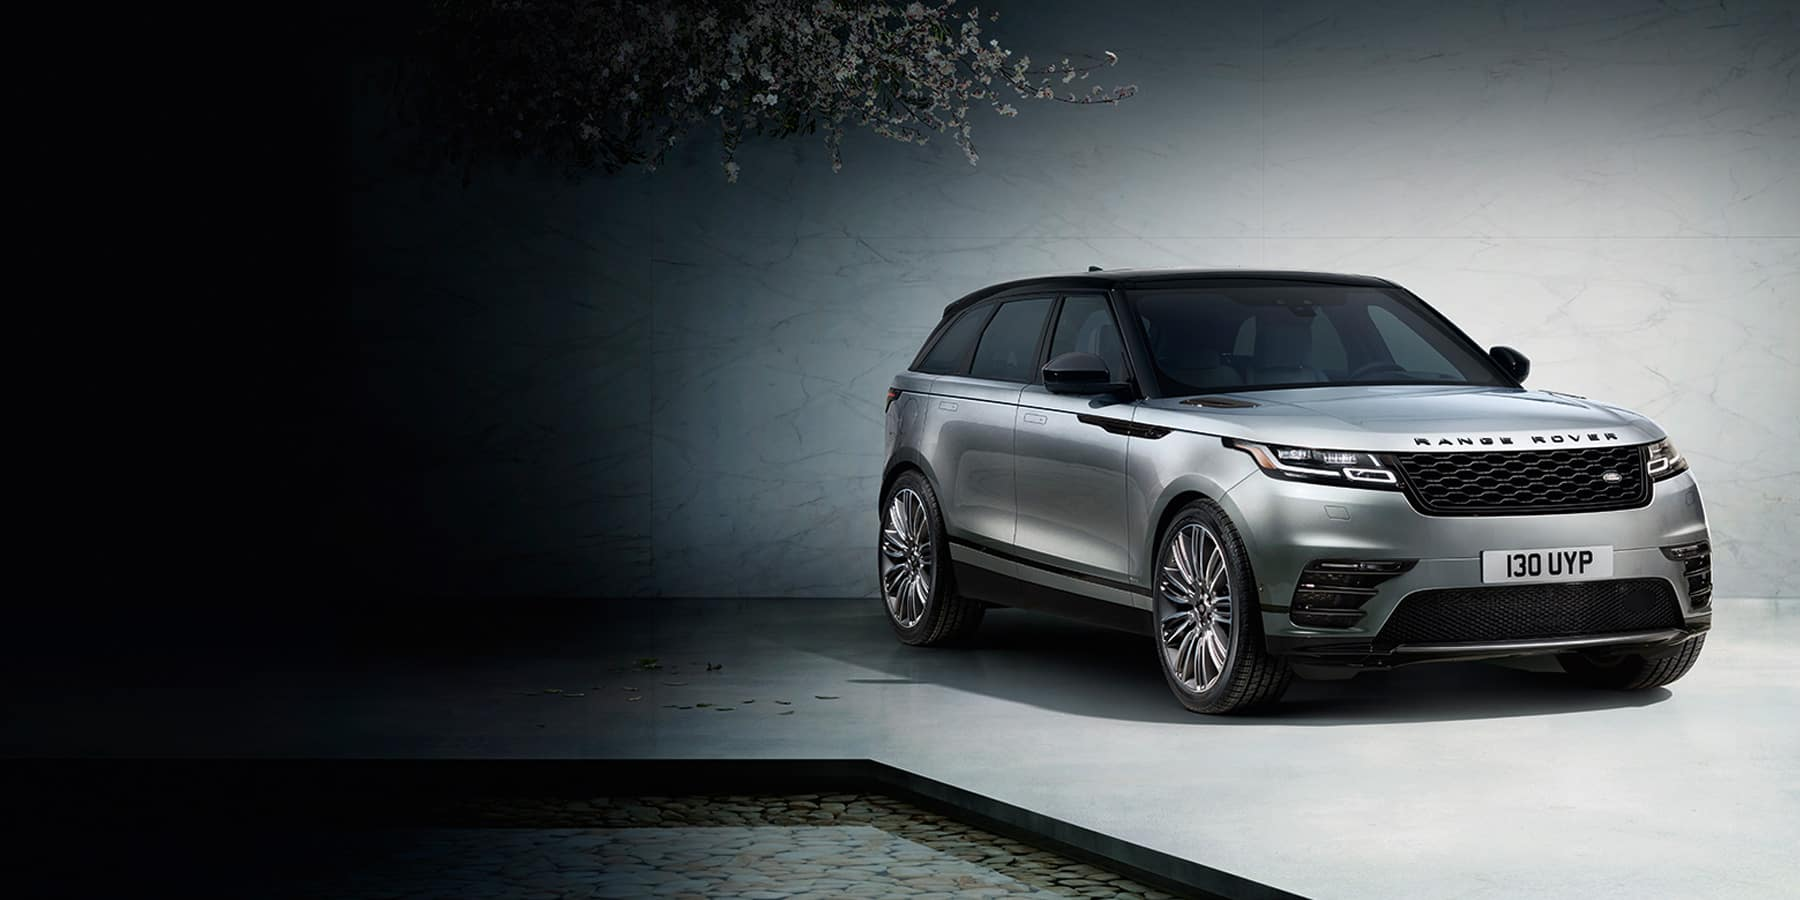 2019 range rover velar colors | explore luxury suv style at land